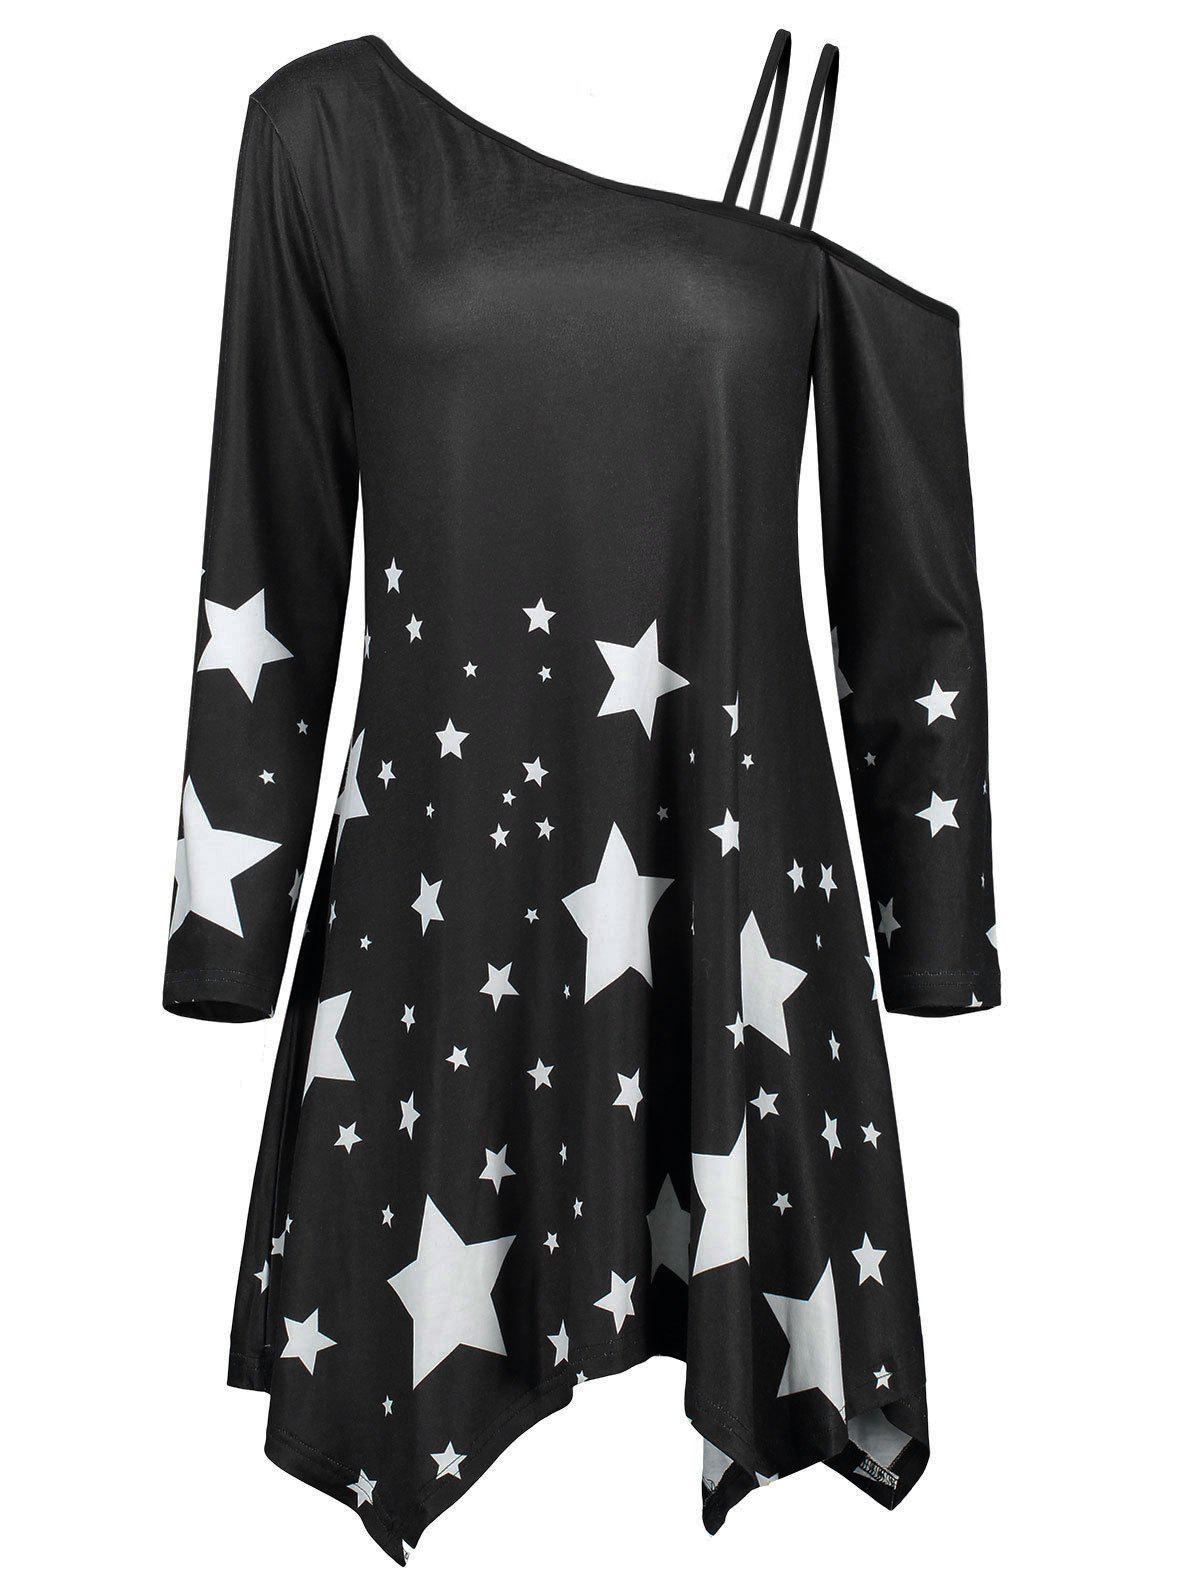 Discount Skew Collar Asymmetric Star Print Dress